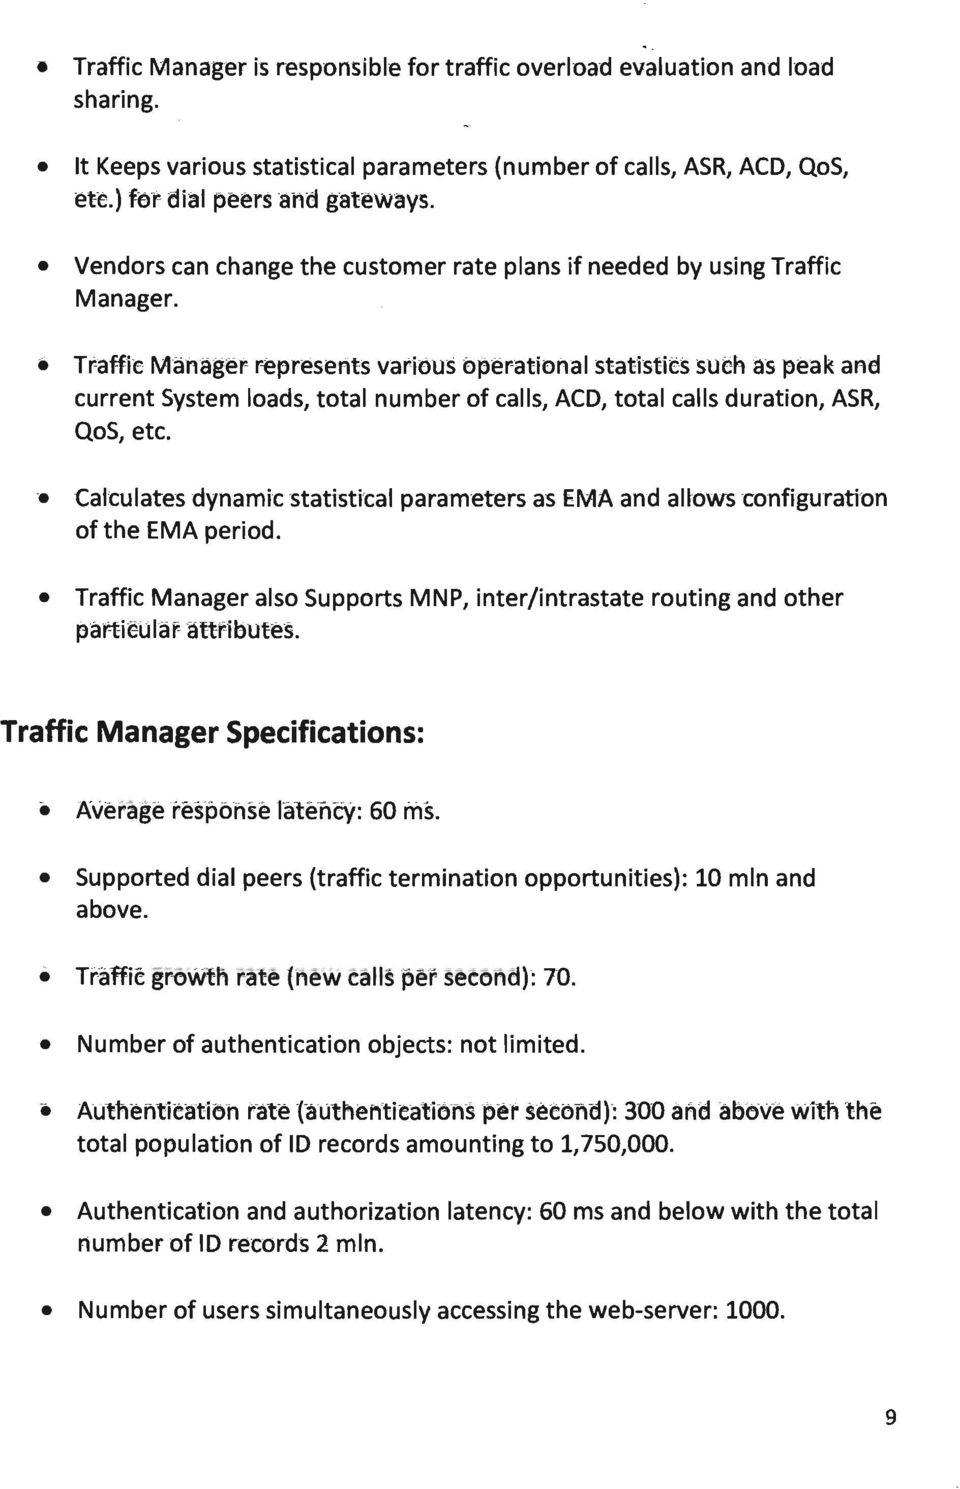 .. Traffie Manager represents various operational statisties sueacls peak ana current System loads, total number of calls, ACO, total calls duration, ASR, QoS, etc.